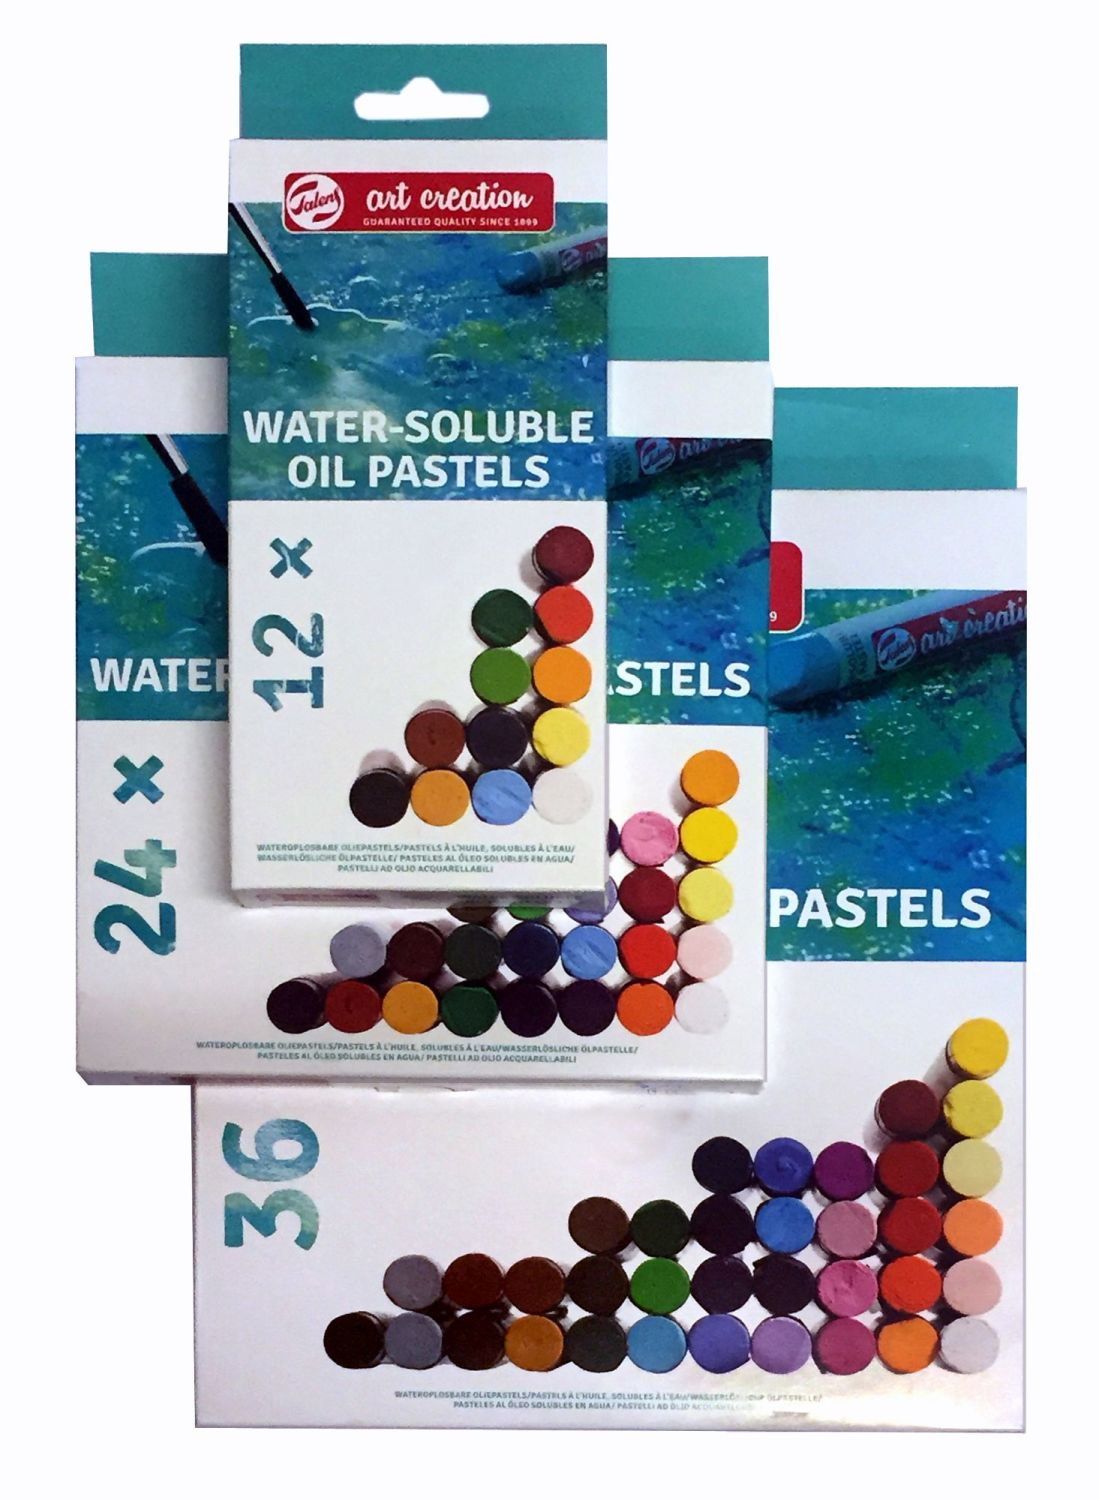 !! NEW - SPECIAL PRICE !! Talens Art Creation Water-Soluable Oil Pastel Set